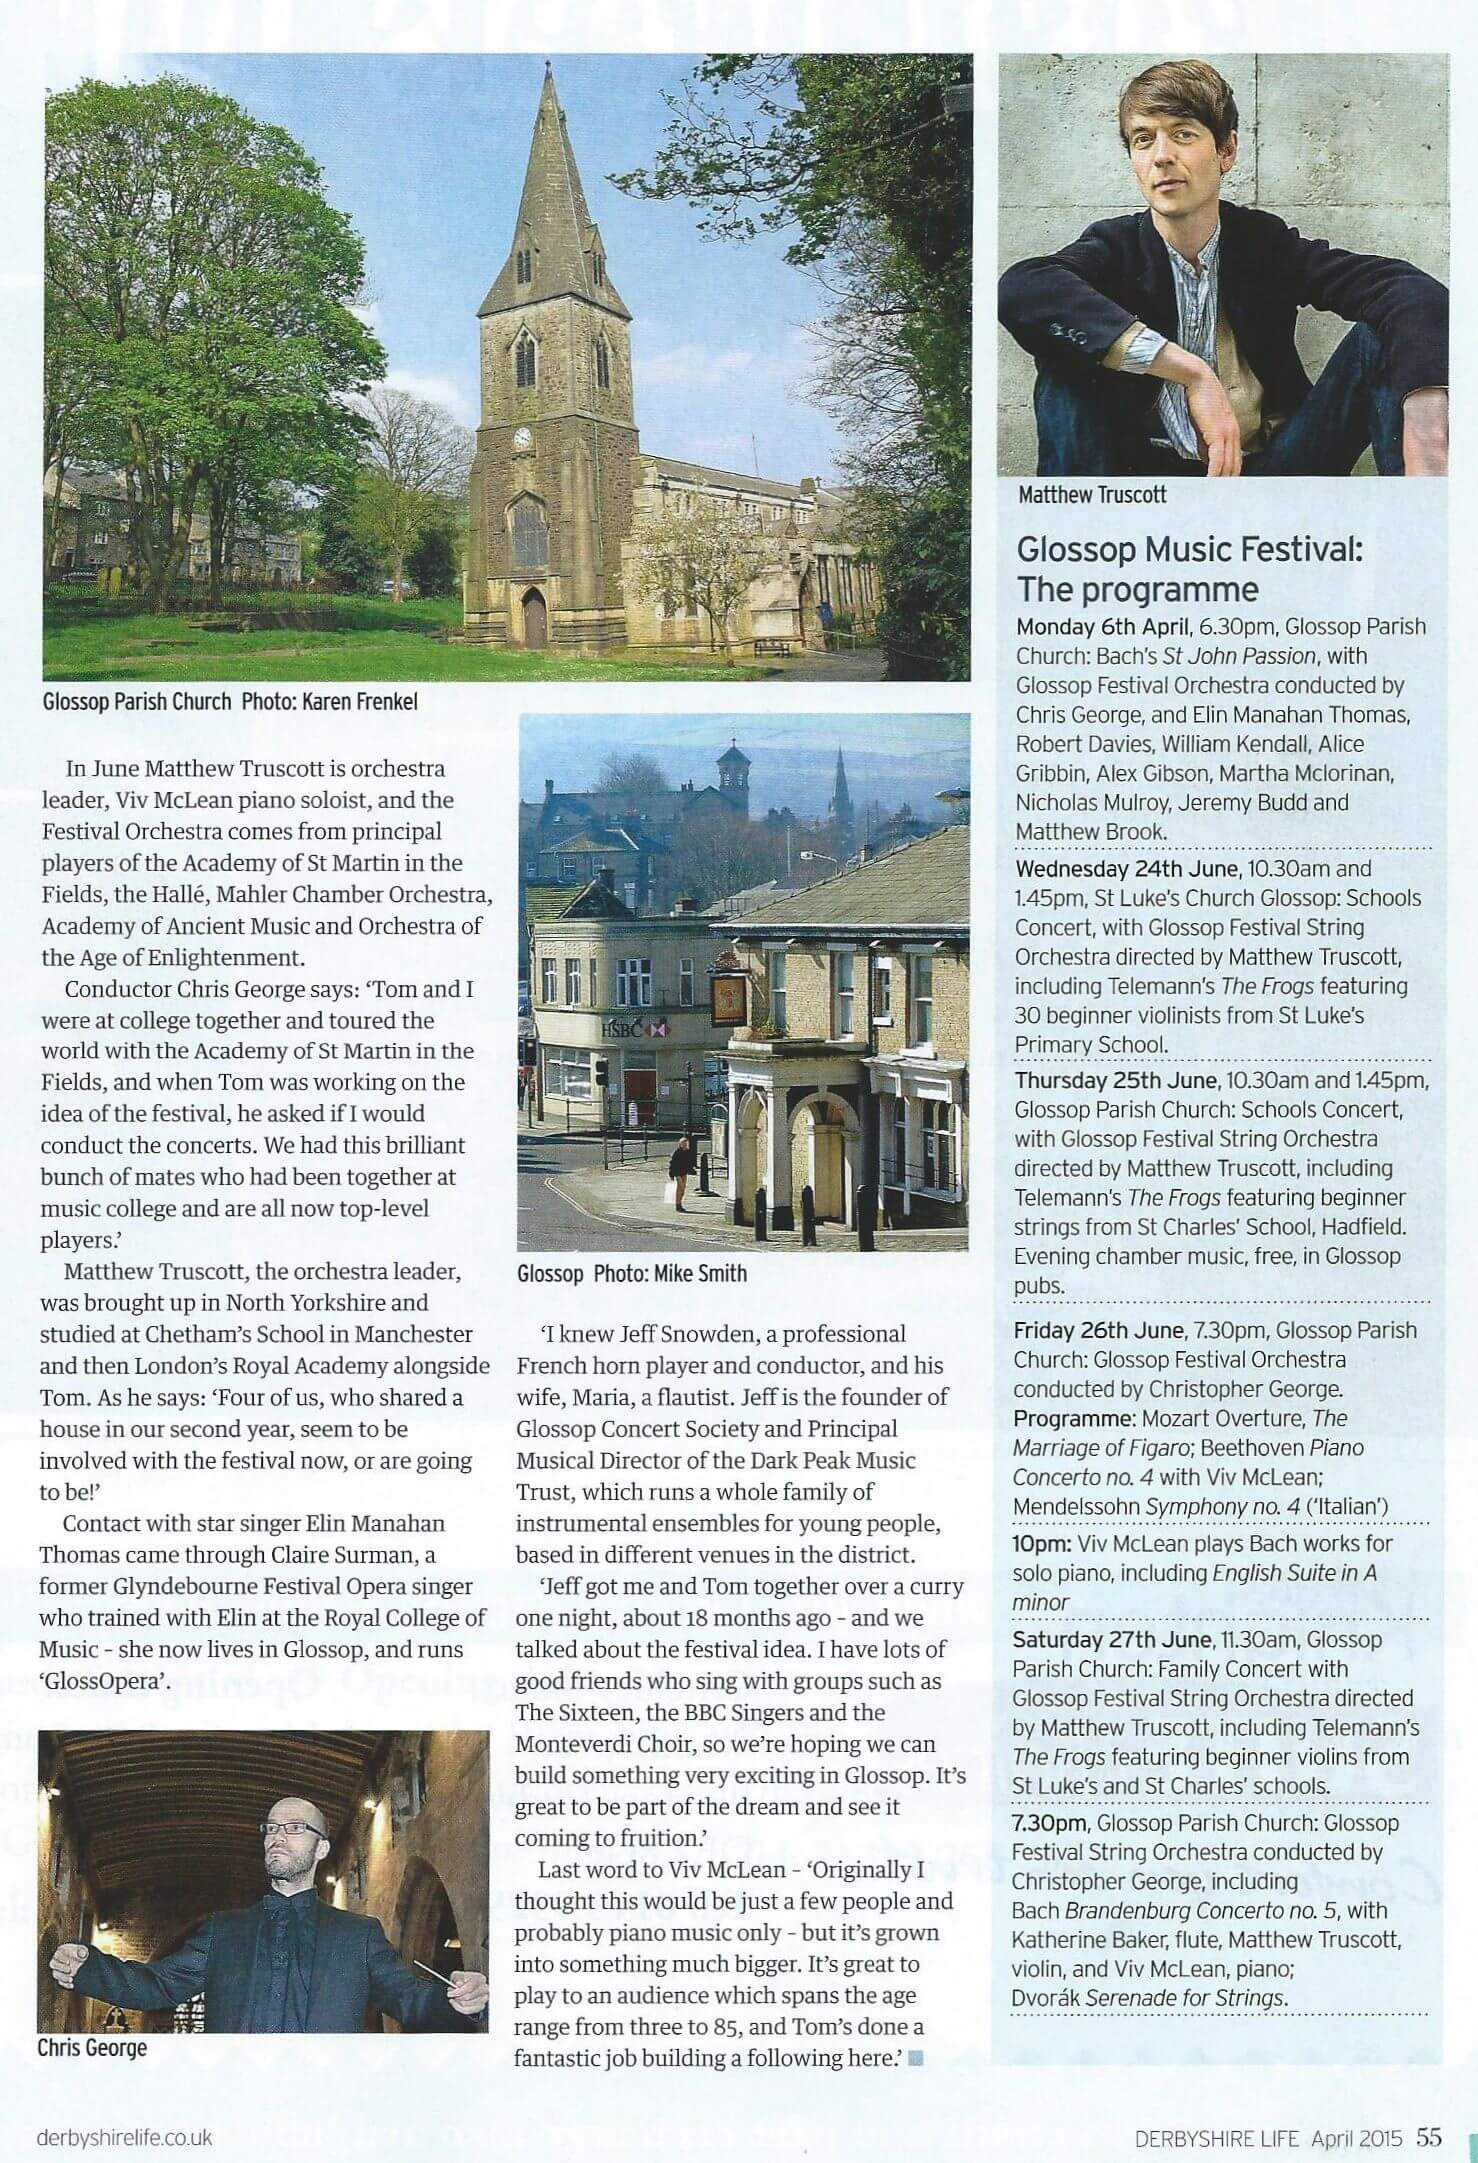 derbyshire-life-article-april-page-55-festival-25-3-2015